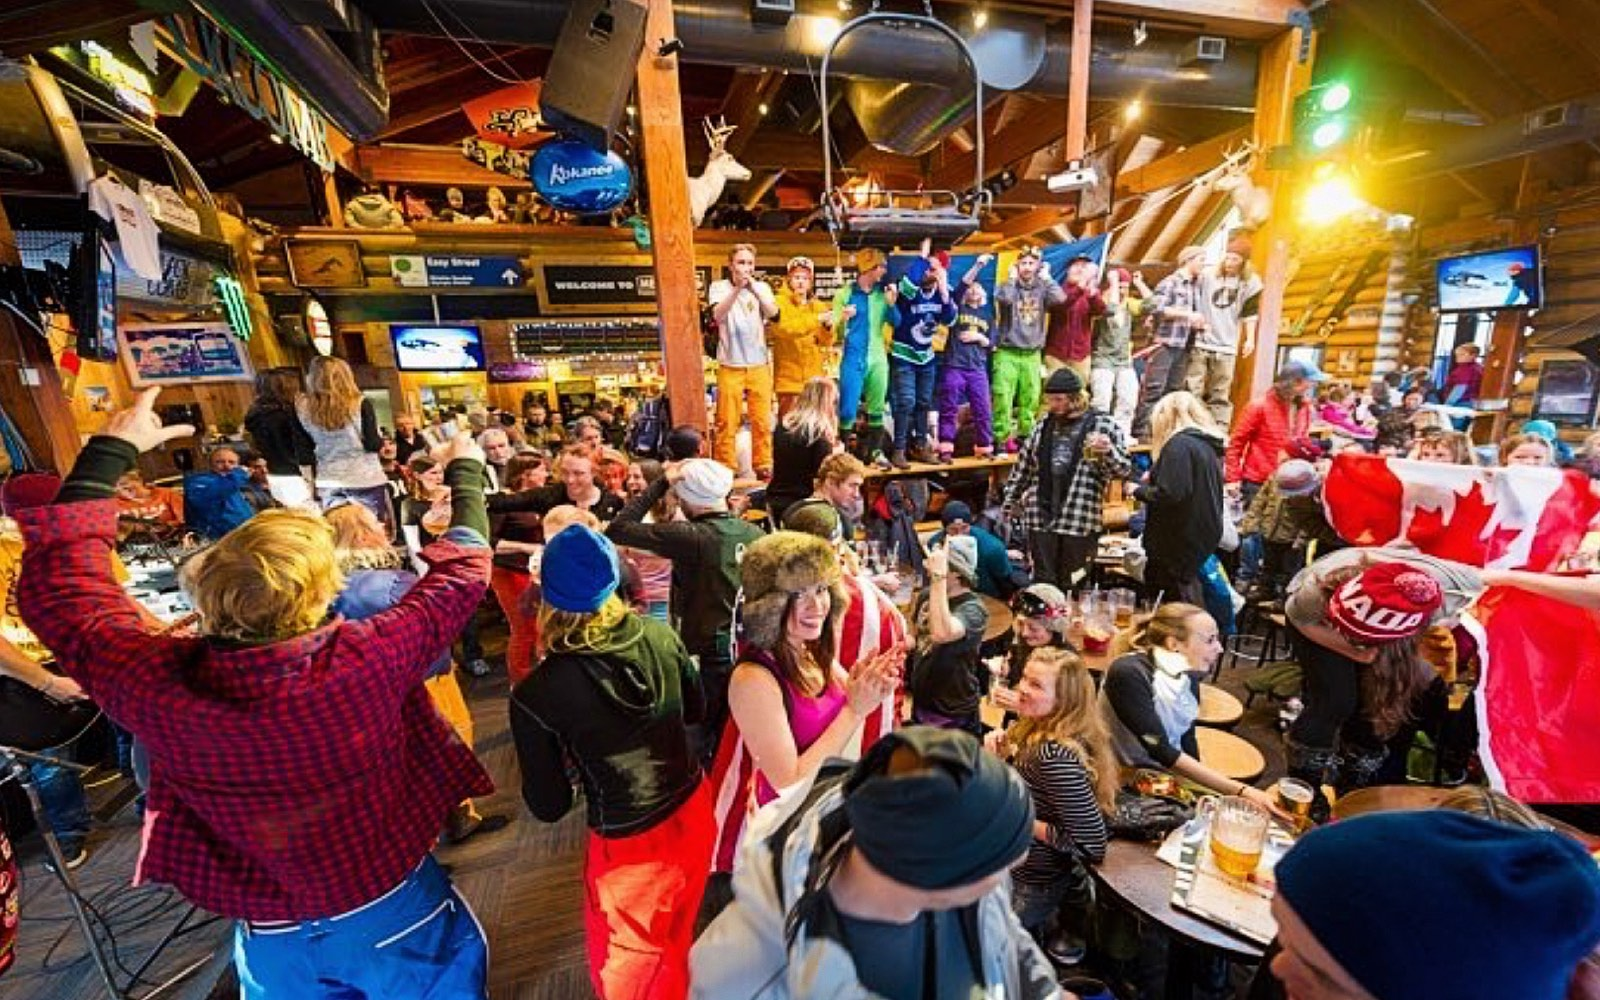 Patrons dance on the table at Merlins, Whistler